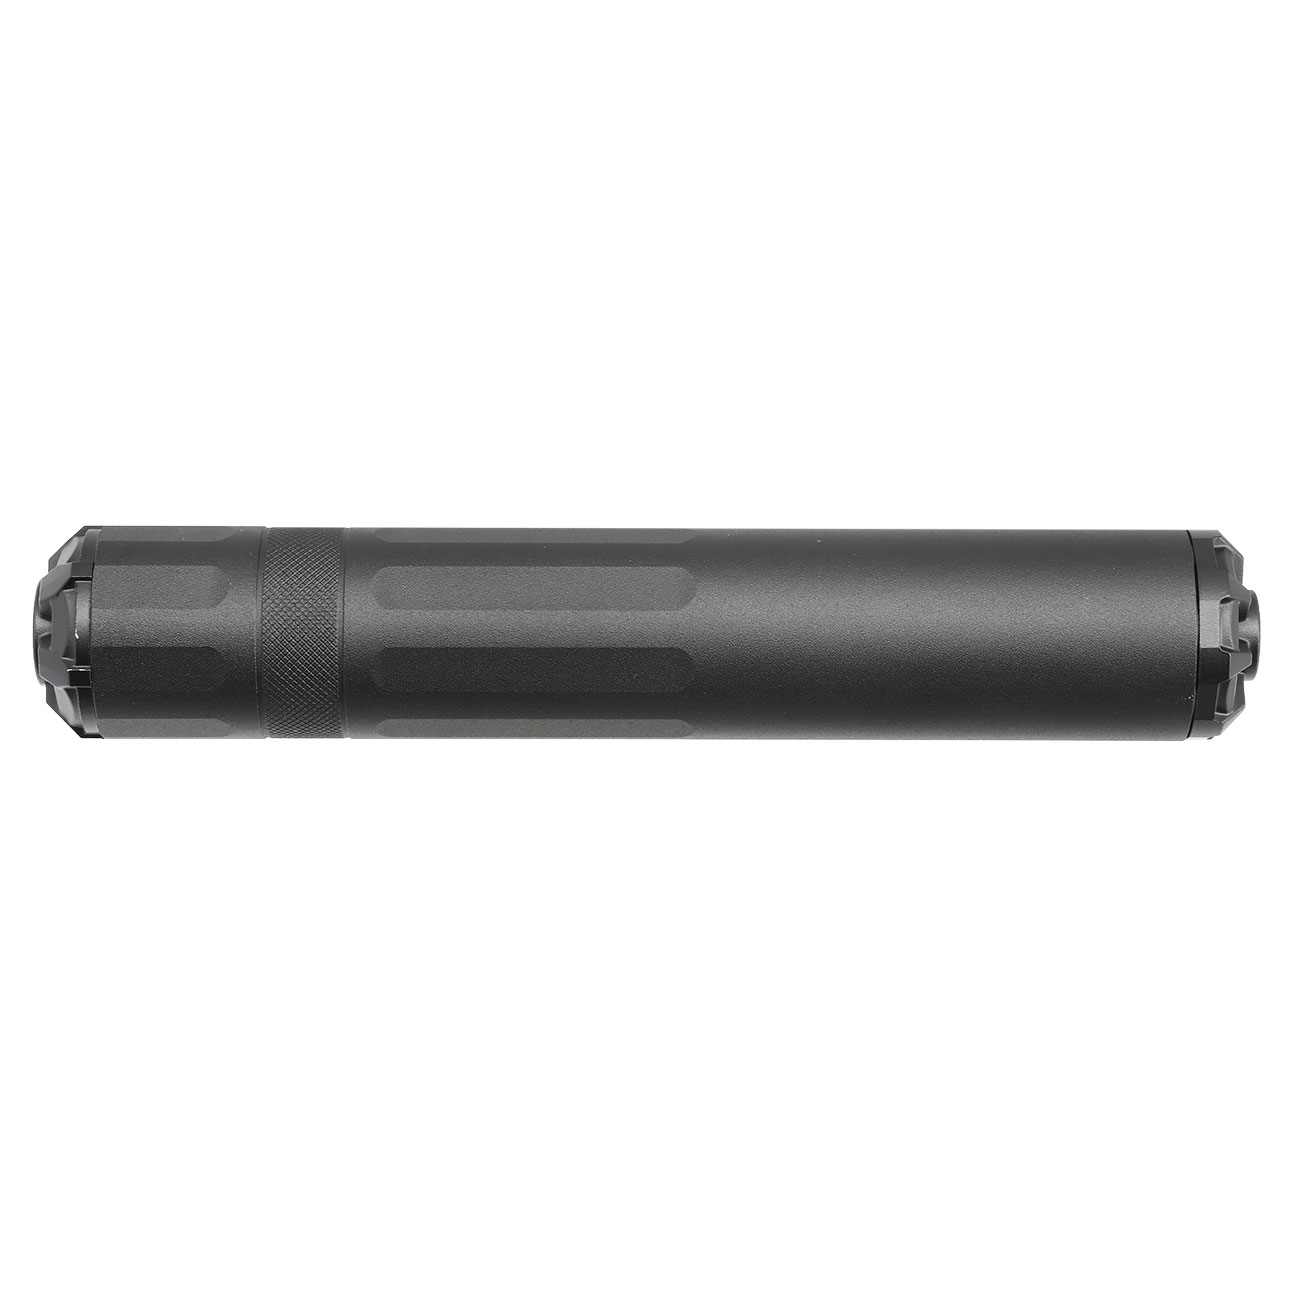 G&G GOMS MK1 Aluminium Tactical Silencer 210mm 14mm- schwarz 3